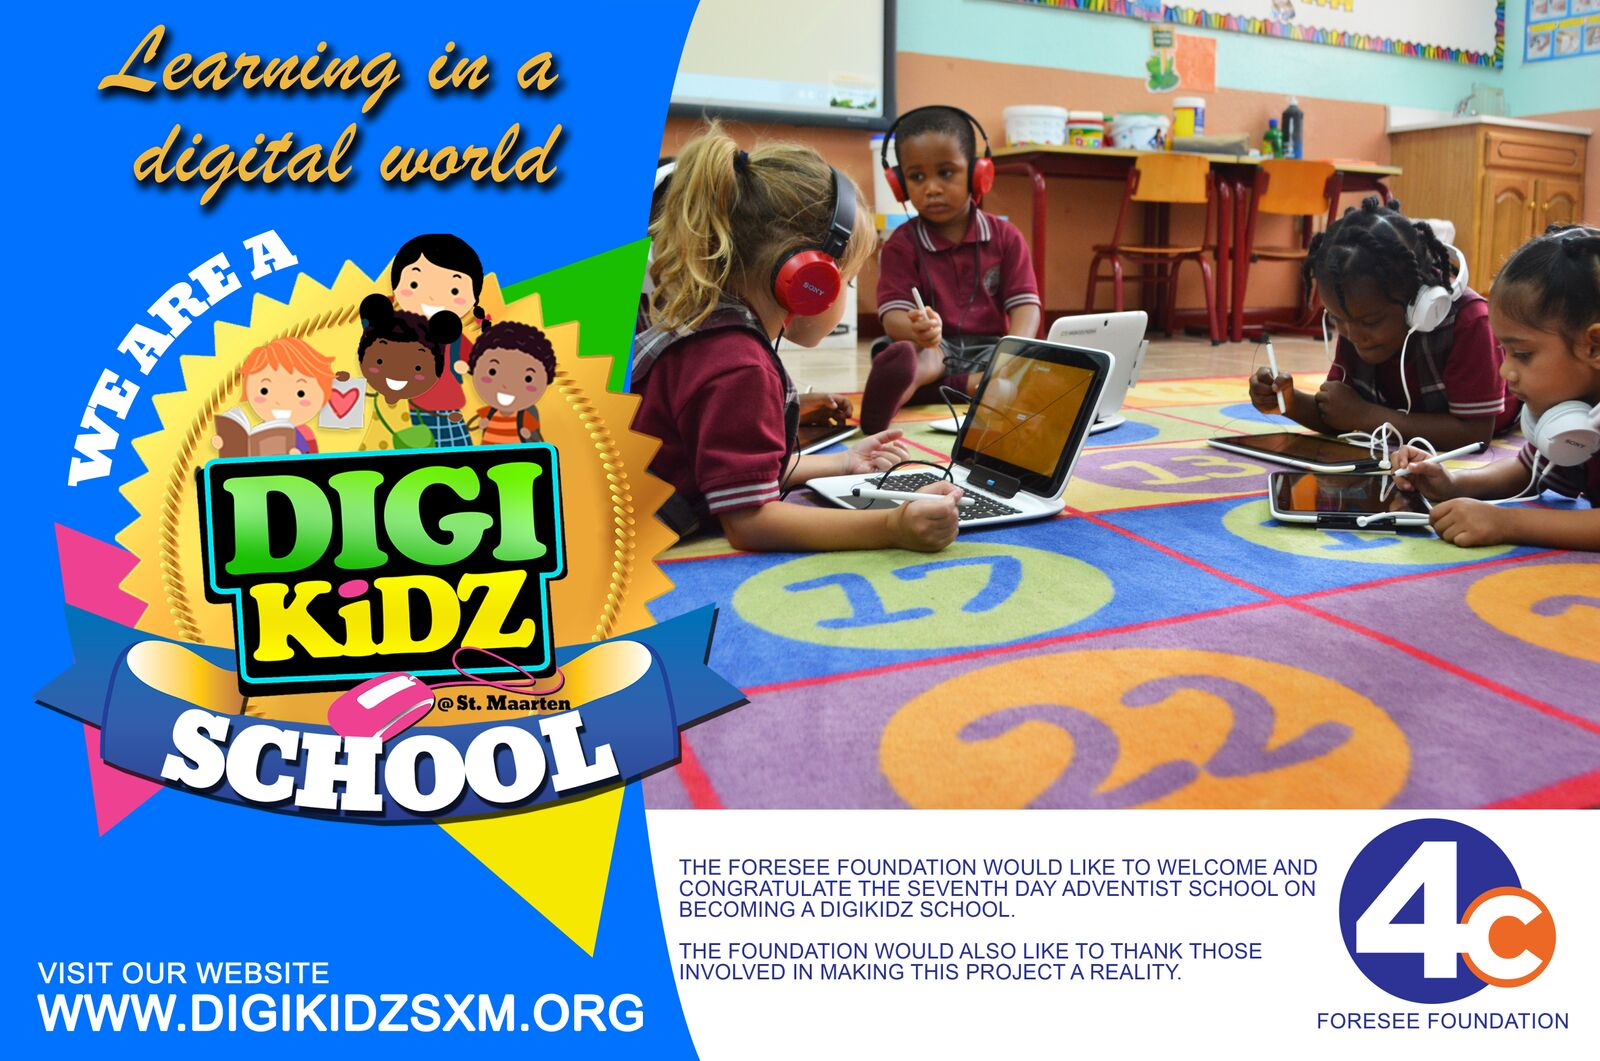 Picture: Launch of Second DigiKidz School: Seventh Day Adventist School, Cole bay